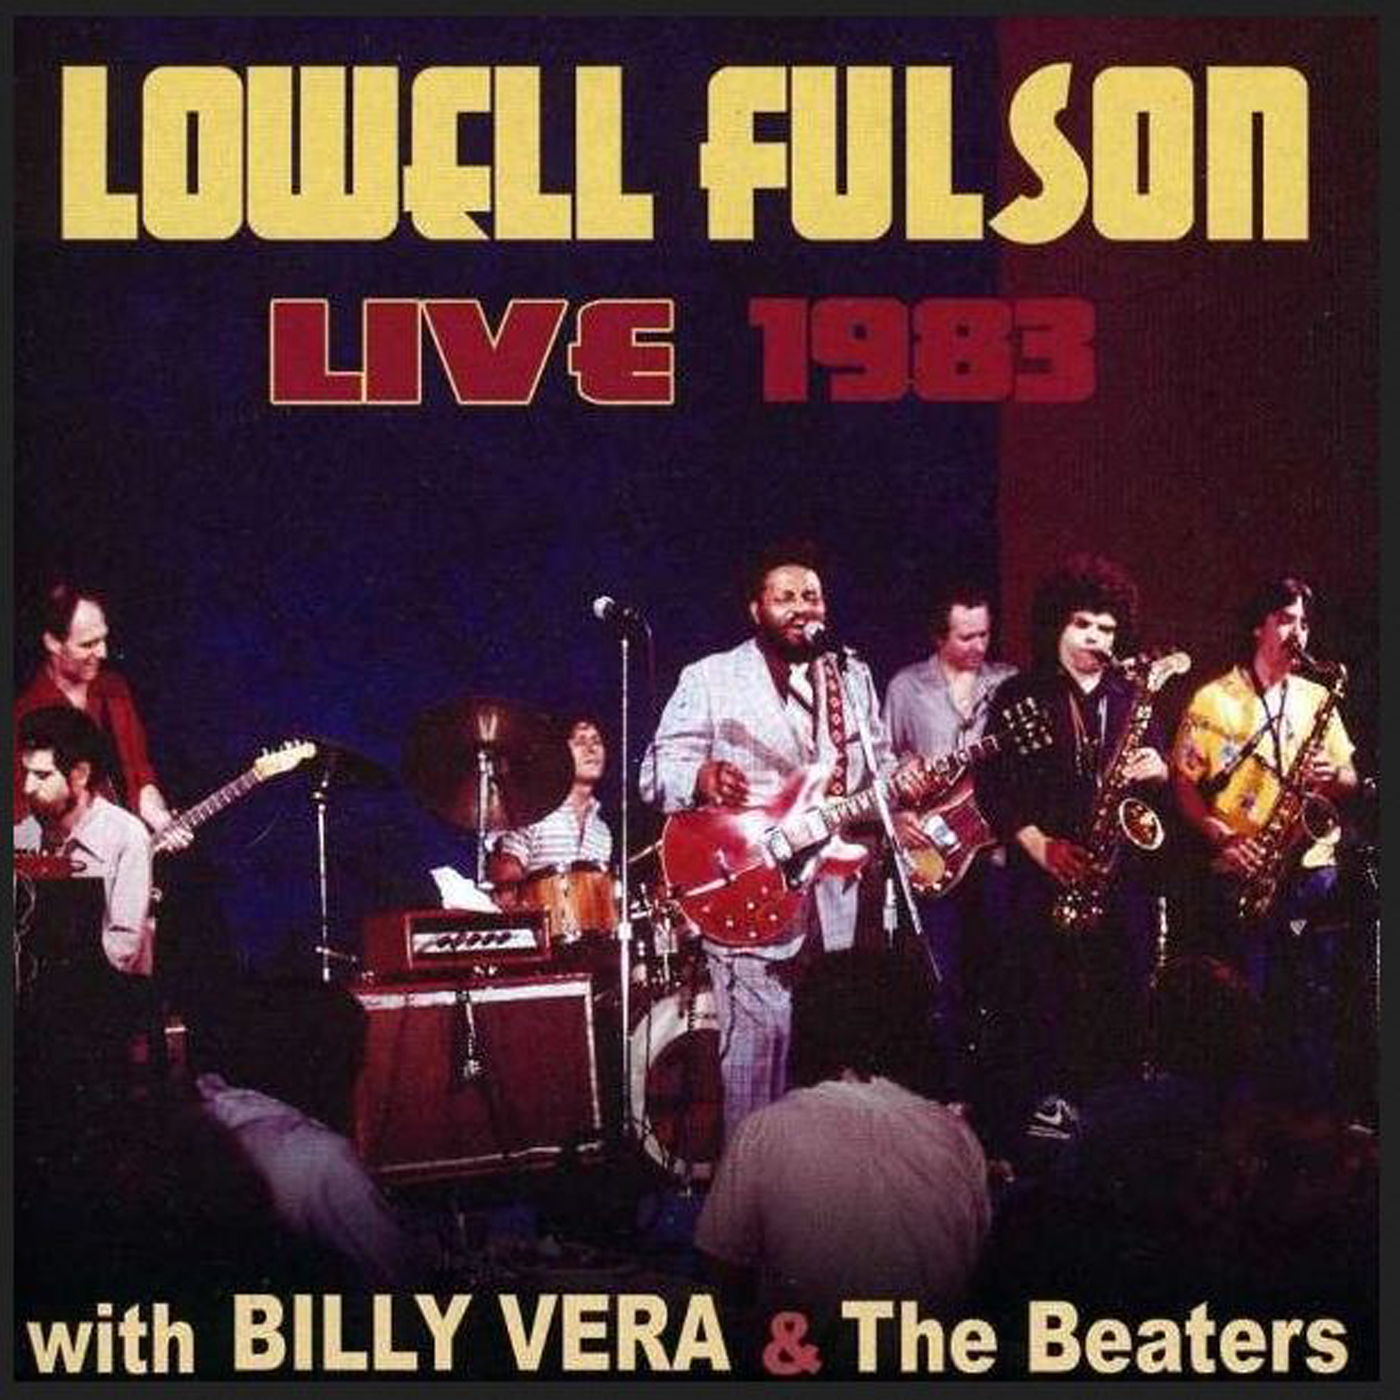 Lowell Fulson CD: Live 1983 With Billy Vera And The Beaters - Bear ...